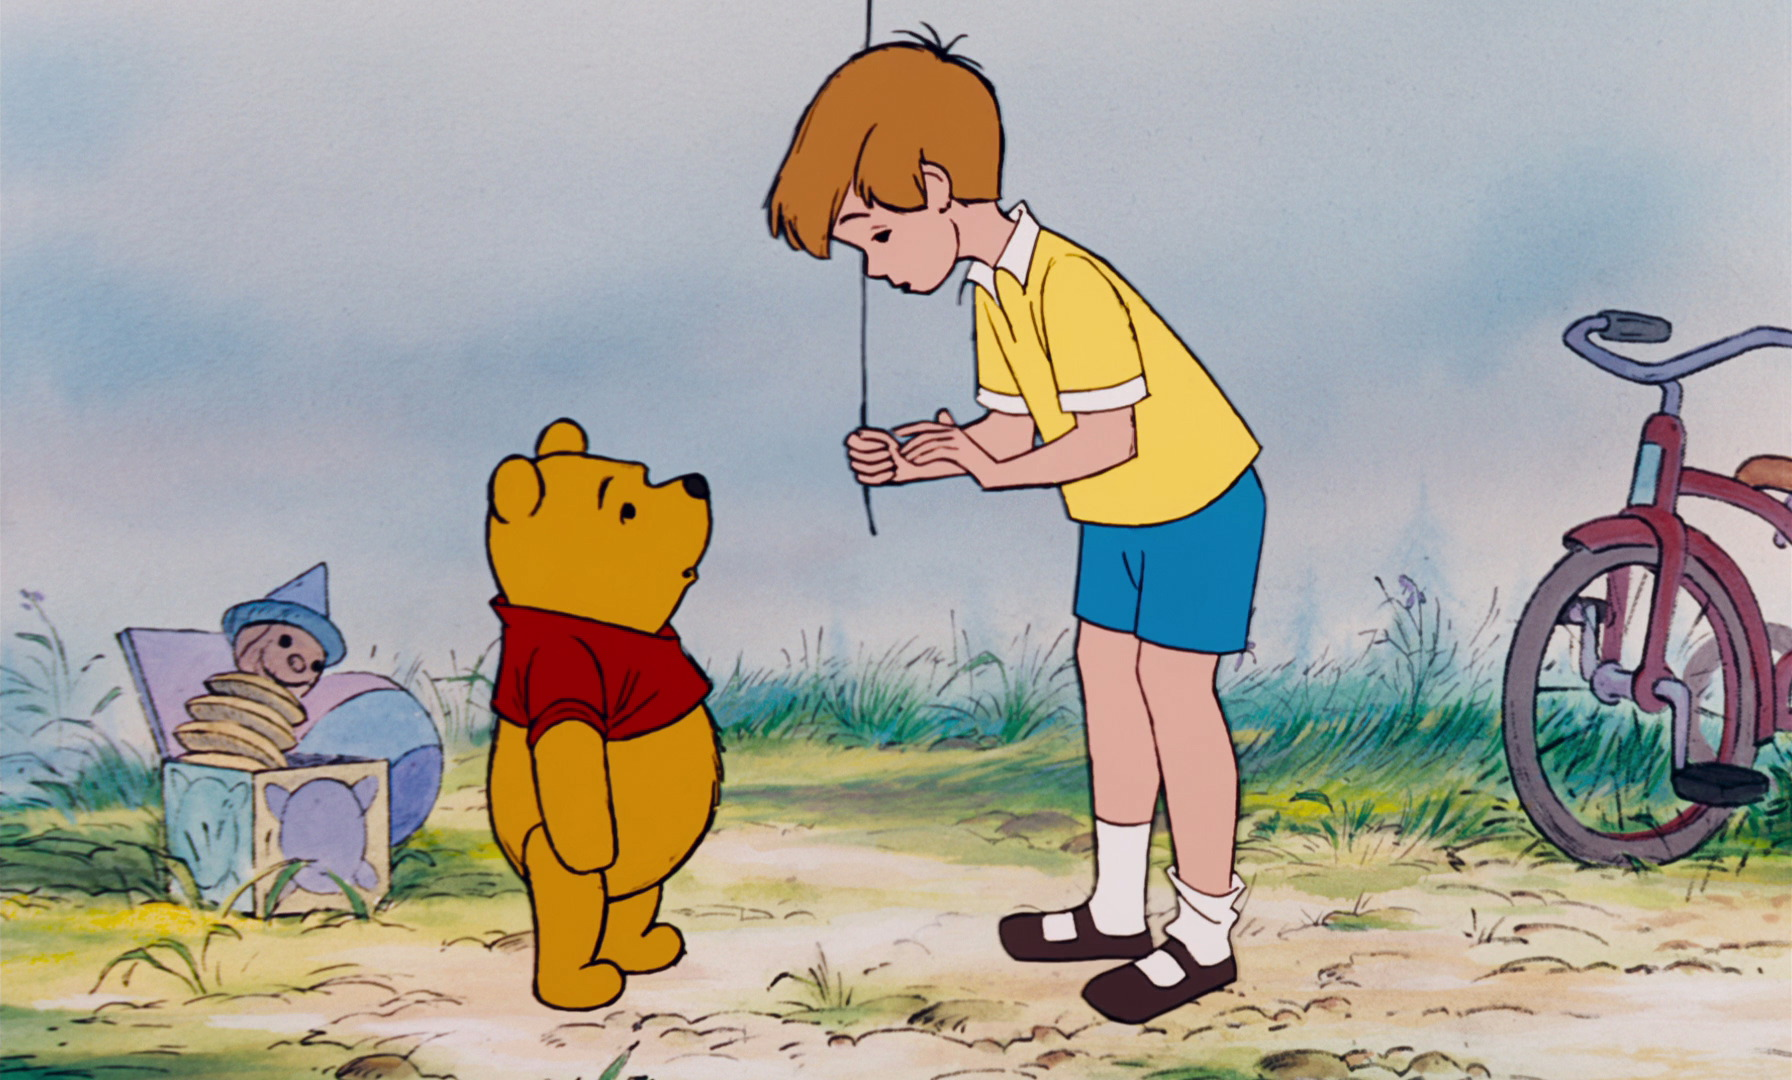 Game boy color pooh wiki - Winnie The Pooh Has Told Christopher Robin He Wants To Use The Blue Balloon To Get Honey Jpg